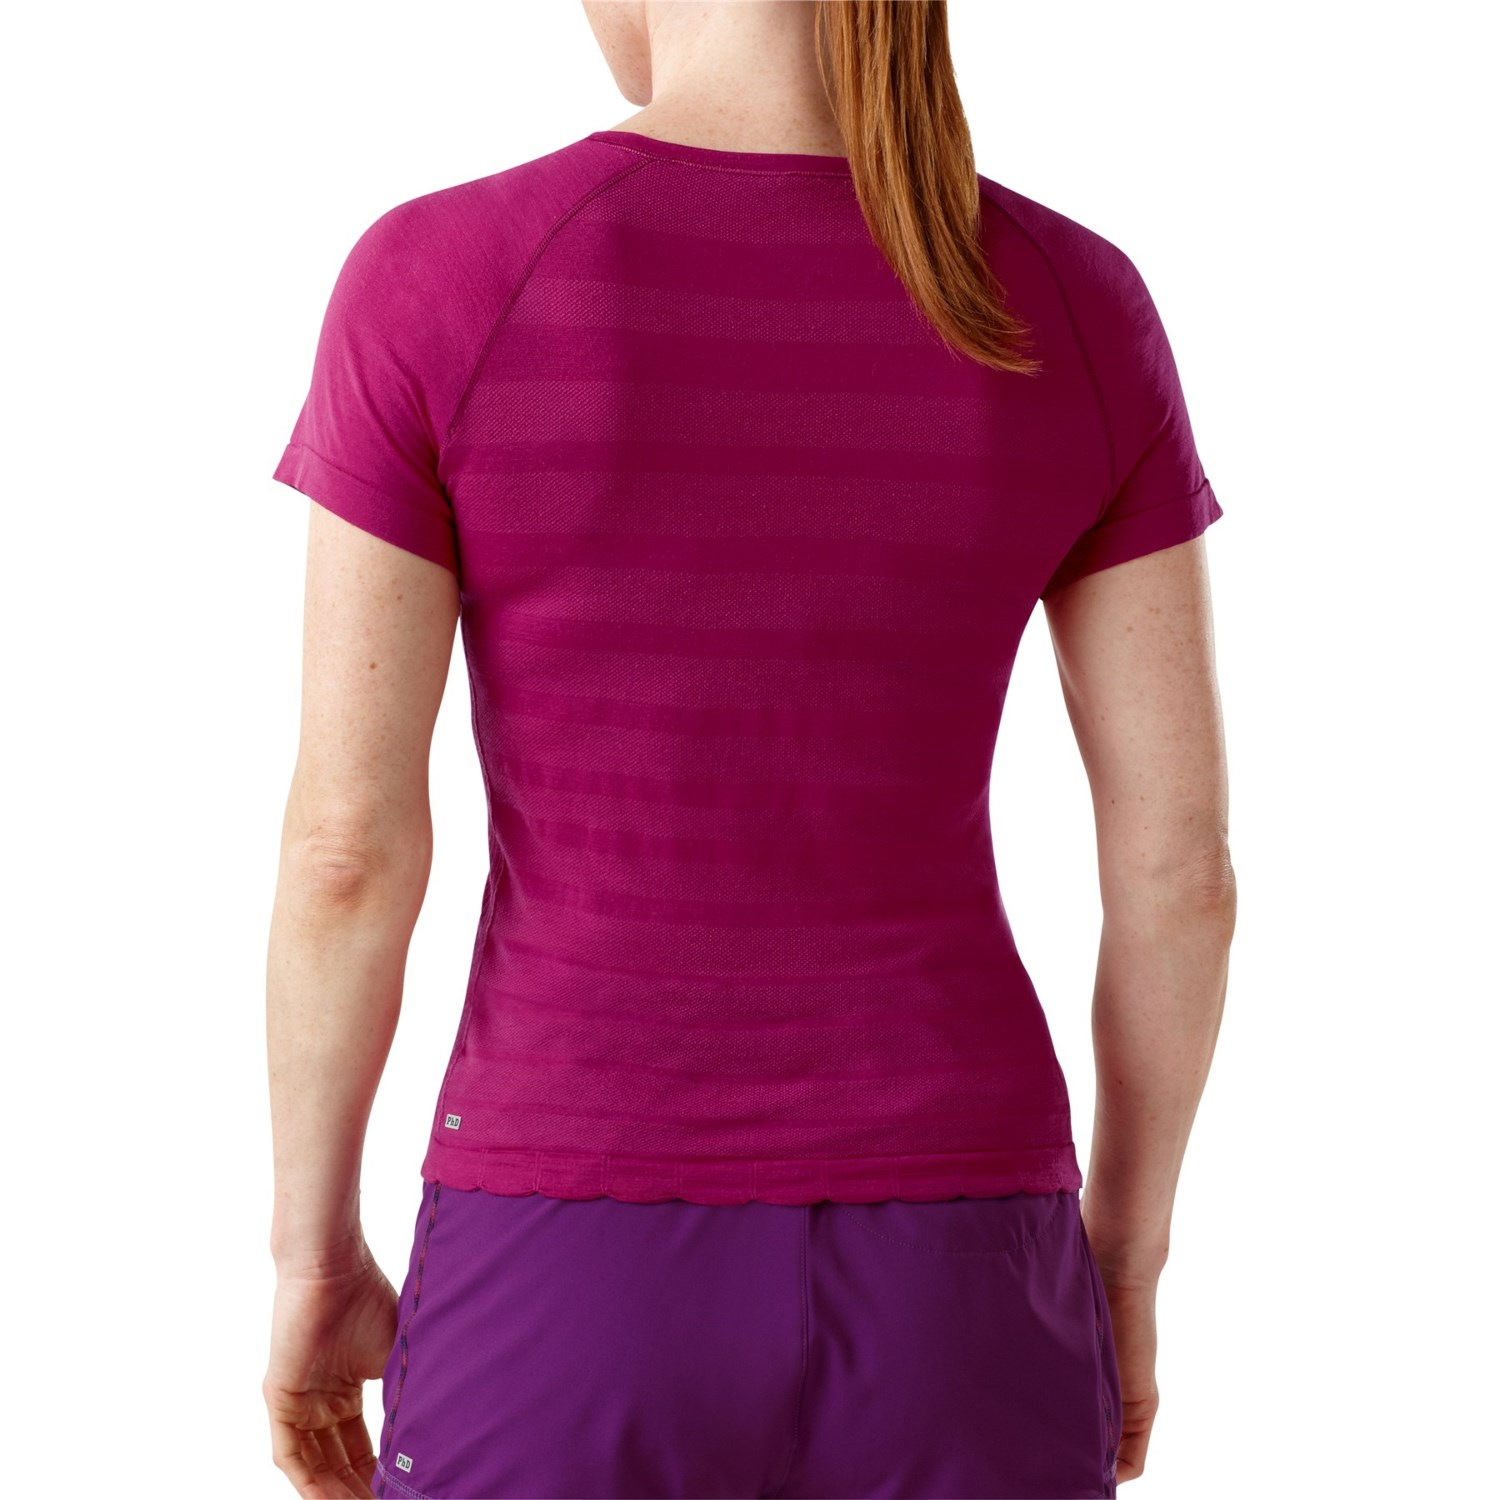 Smartwool phd run shirt for women 6330v for Merino wool shirt womens